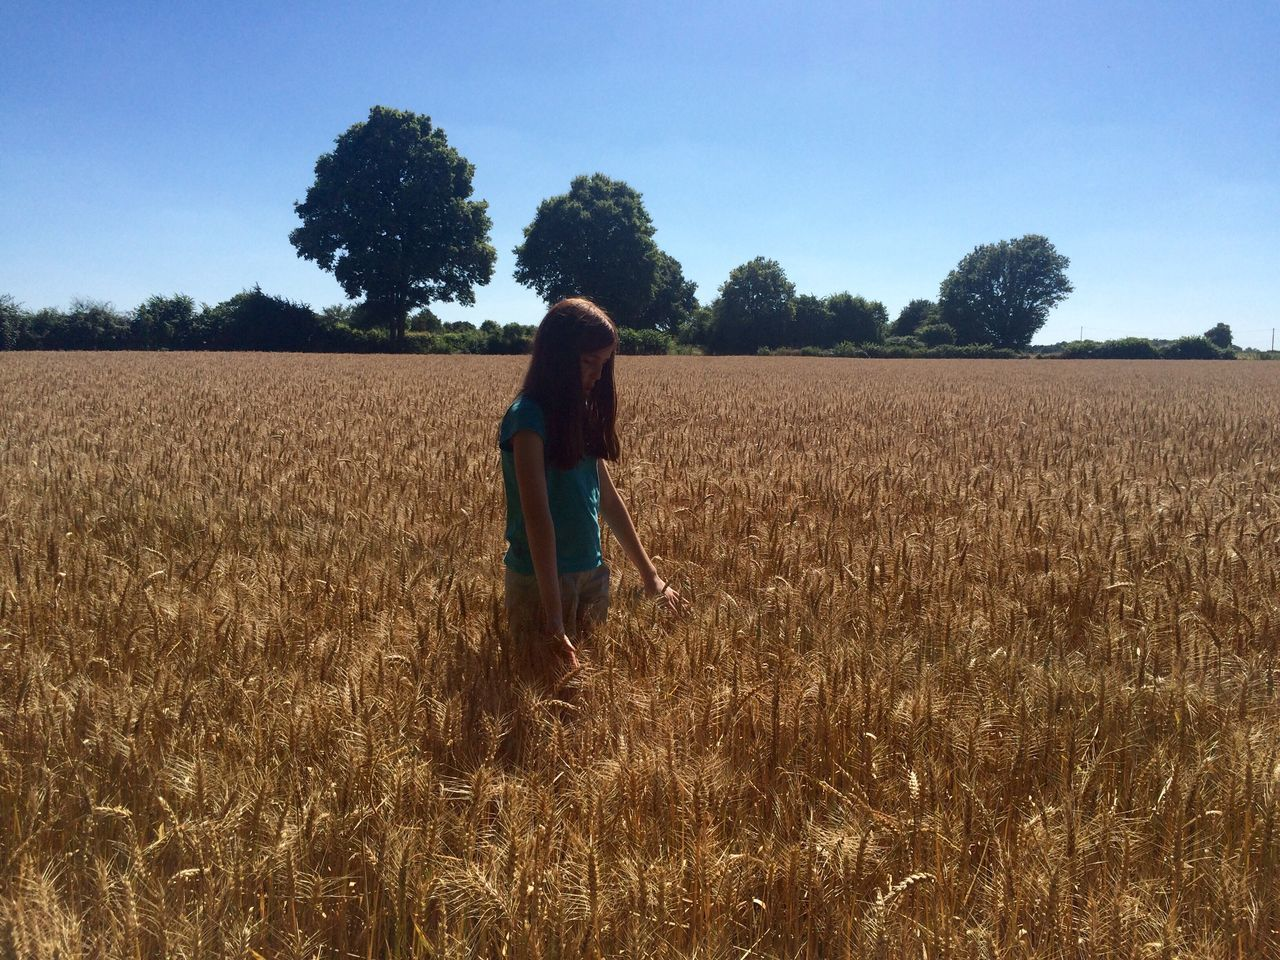 Memories Of Summer Summer Wheat Field France 🇫🇷 Family Blue Sky Wheat Crop  Sun Outdoors Trees Field The Great Outdoors